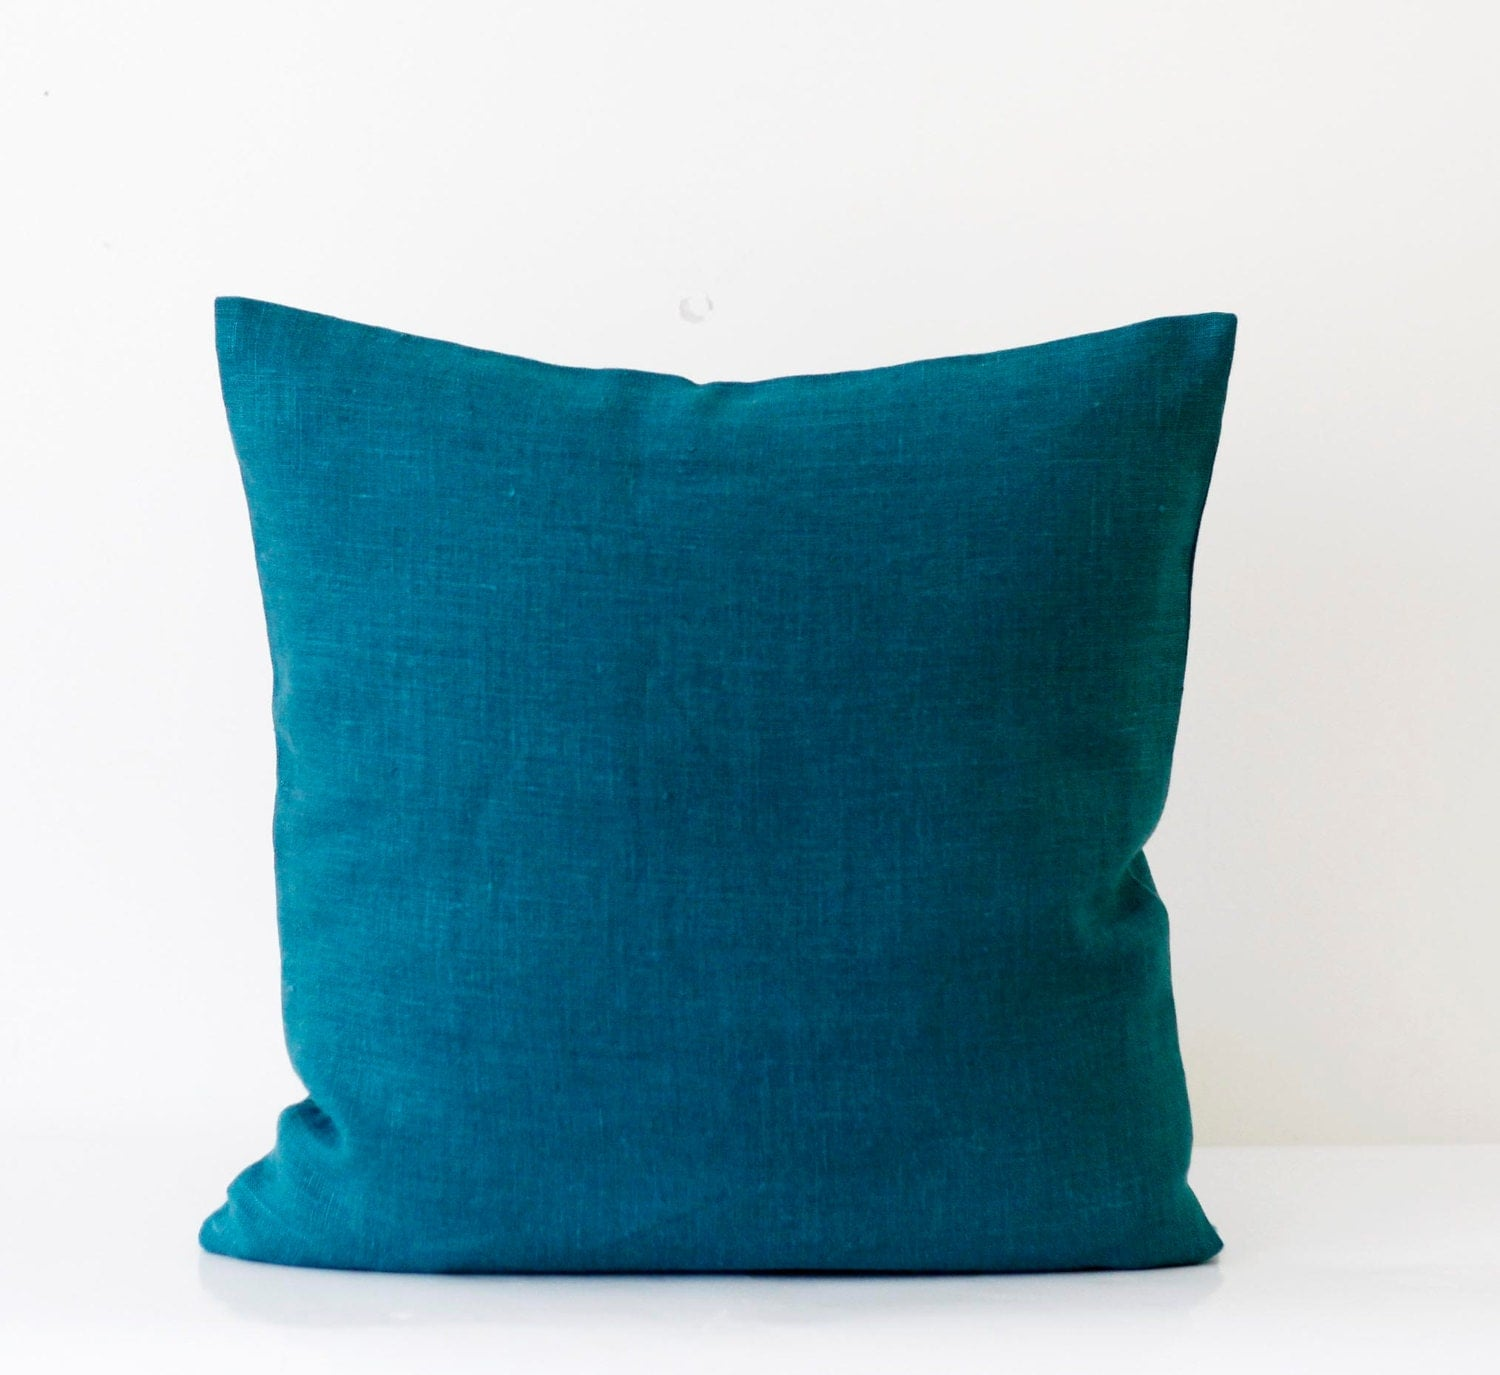 Teal Blue Throw Pillow Covers : Teal blue pillow cover classic style decorative by pillowlink